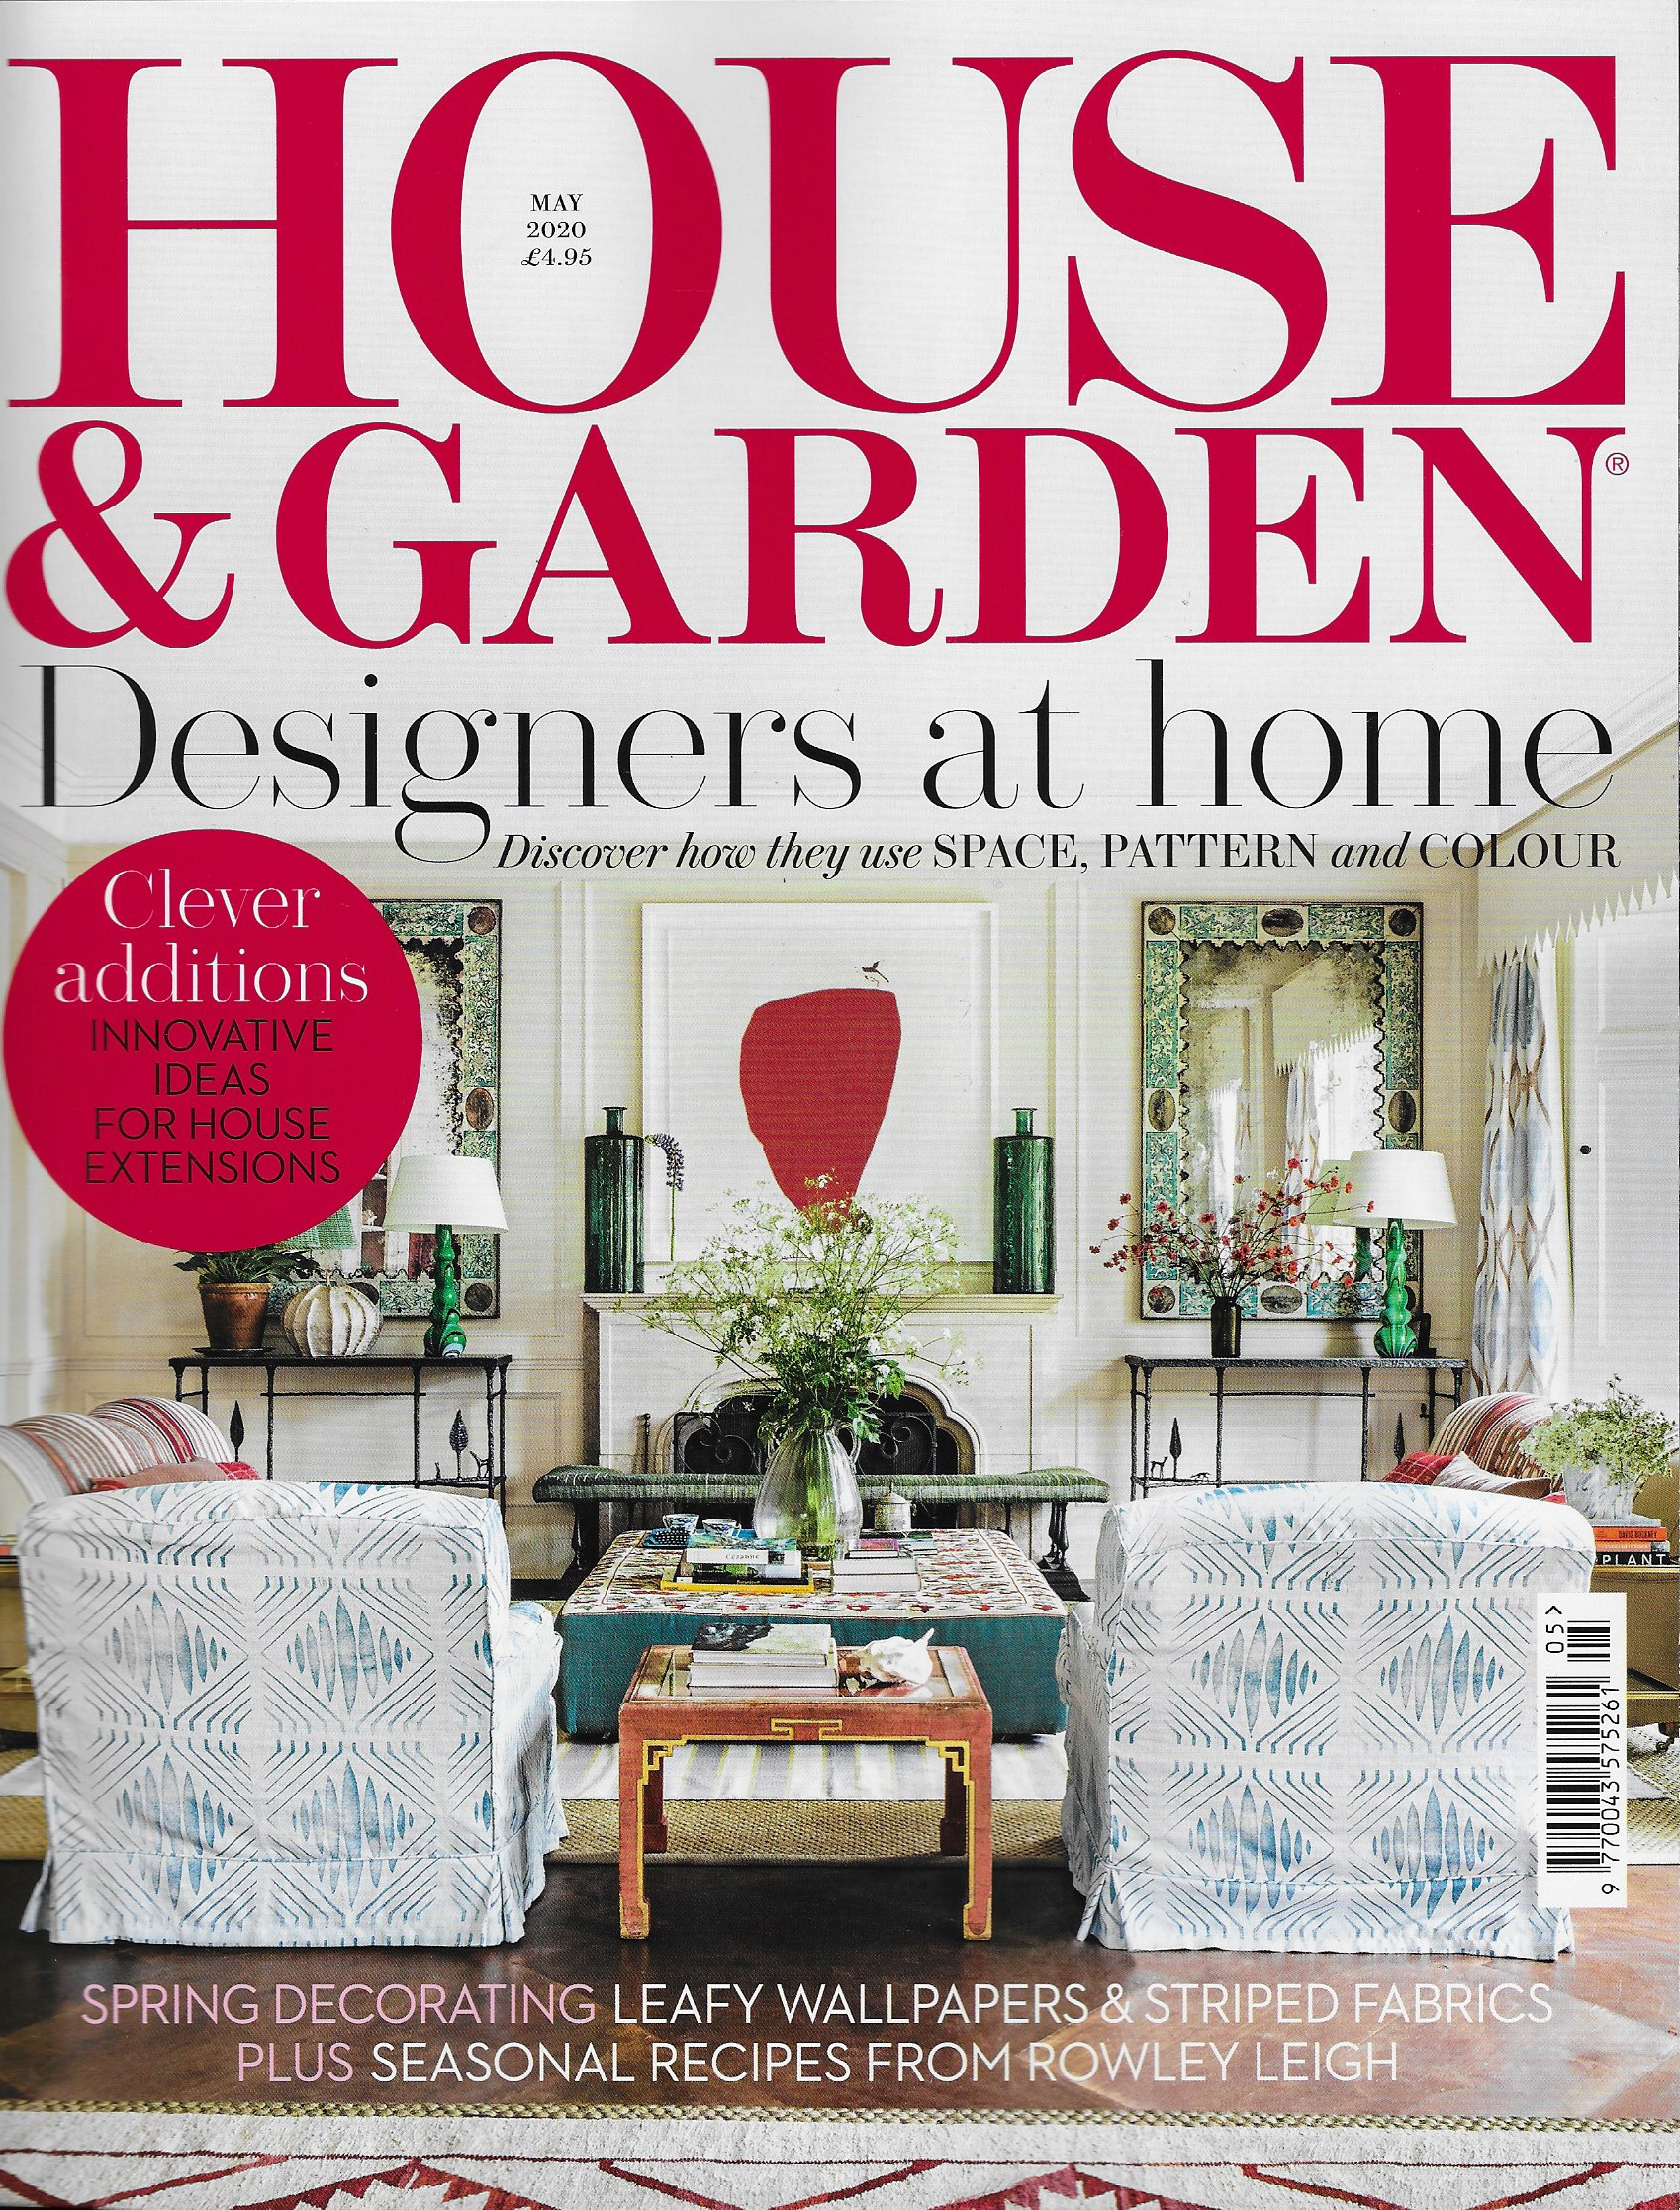 HOUSE & GARDEN UK - MAY 2020